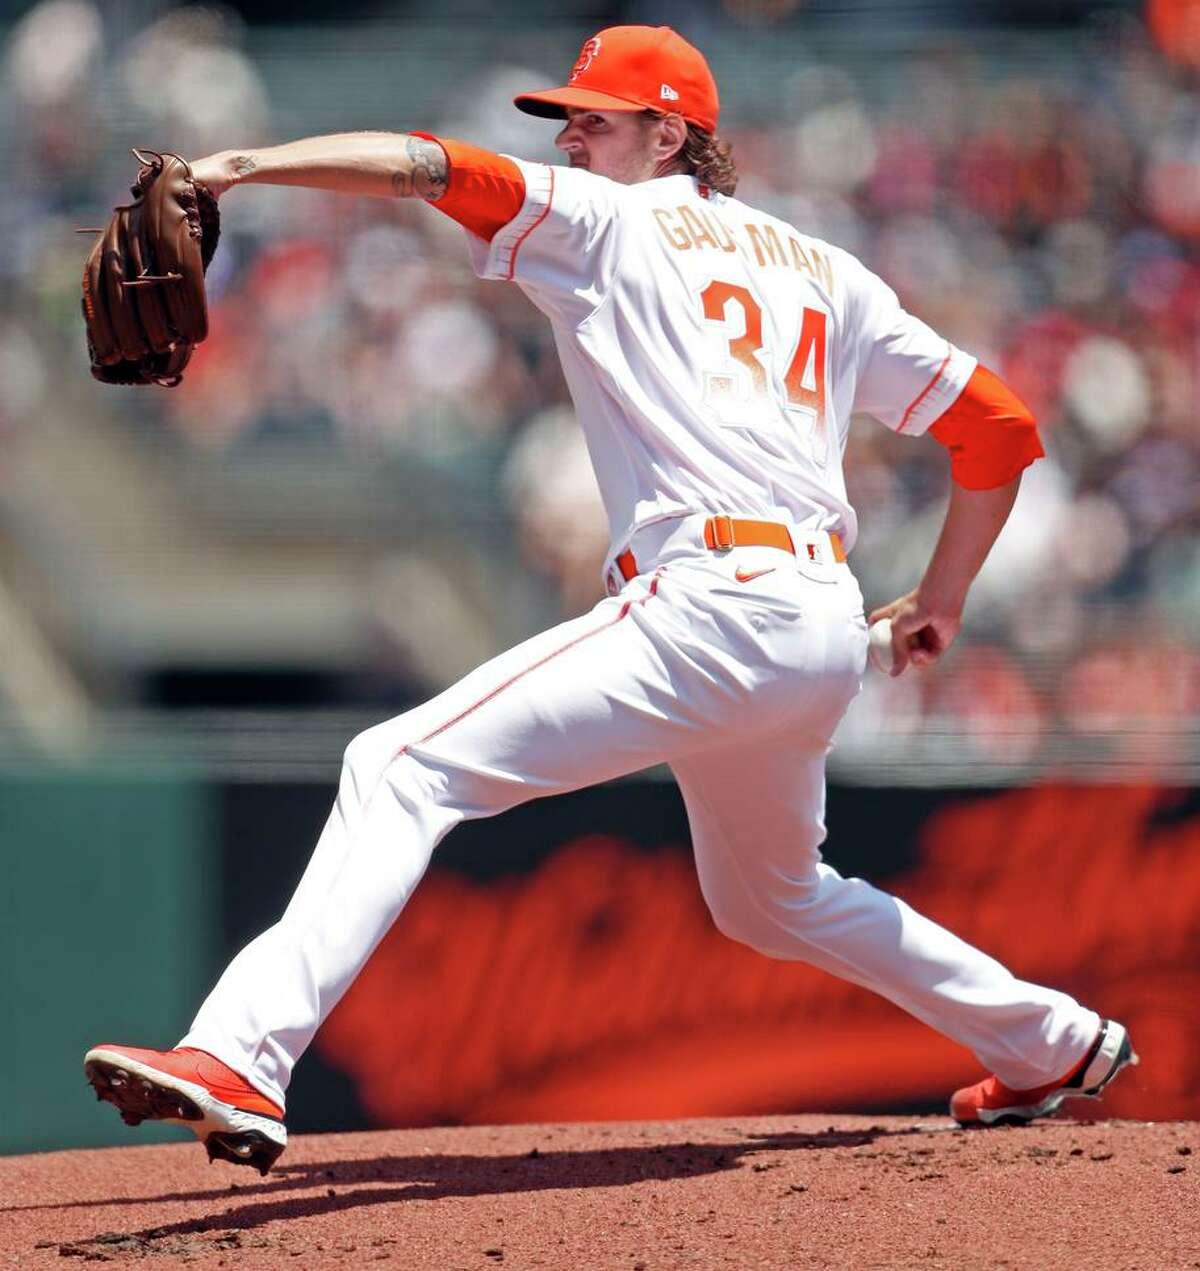 San Francisco Giants' Kevin Gausman pitches in 1st inning against Washington Nationals during MLB game at Oracle Park in San Francisco, Calif., on Sunday, July 11, 2021.